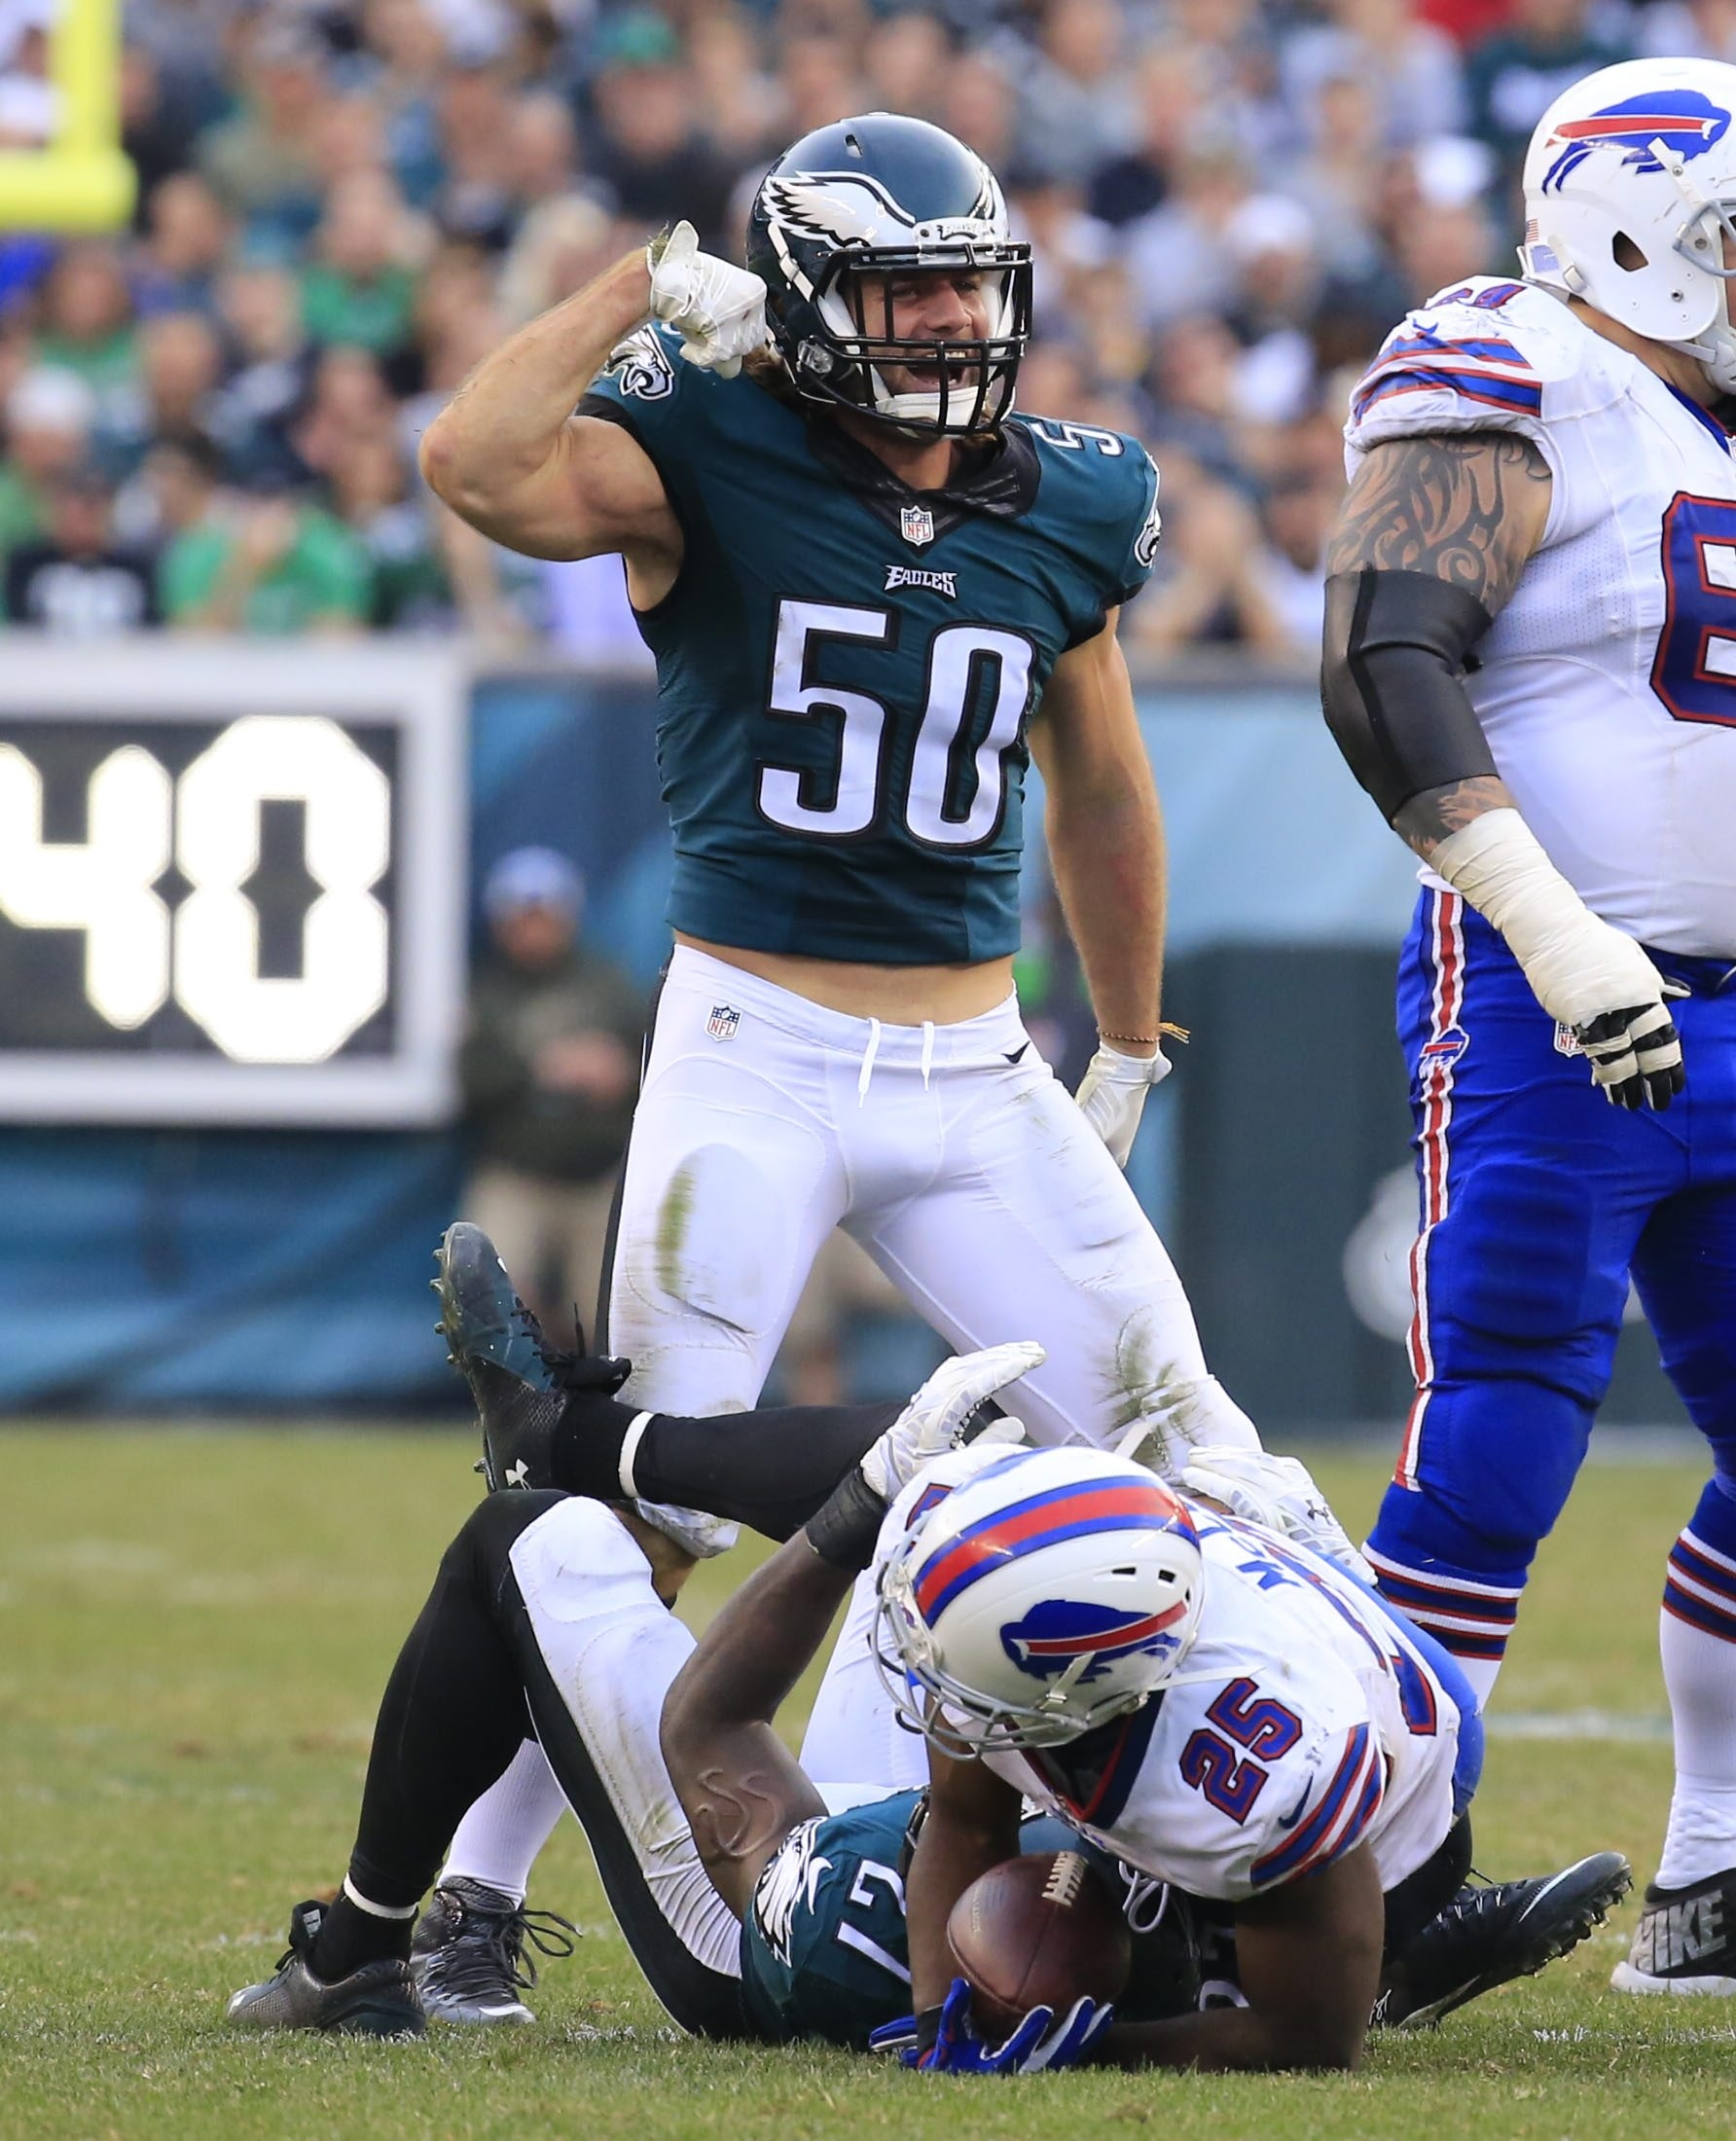 Kiko Alonso of the Eagles flexes a muscle or two after LeSean McCoy was tackled in the second half of Sunday's 23-20 loss in Philadelphia.